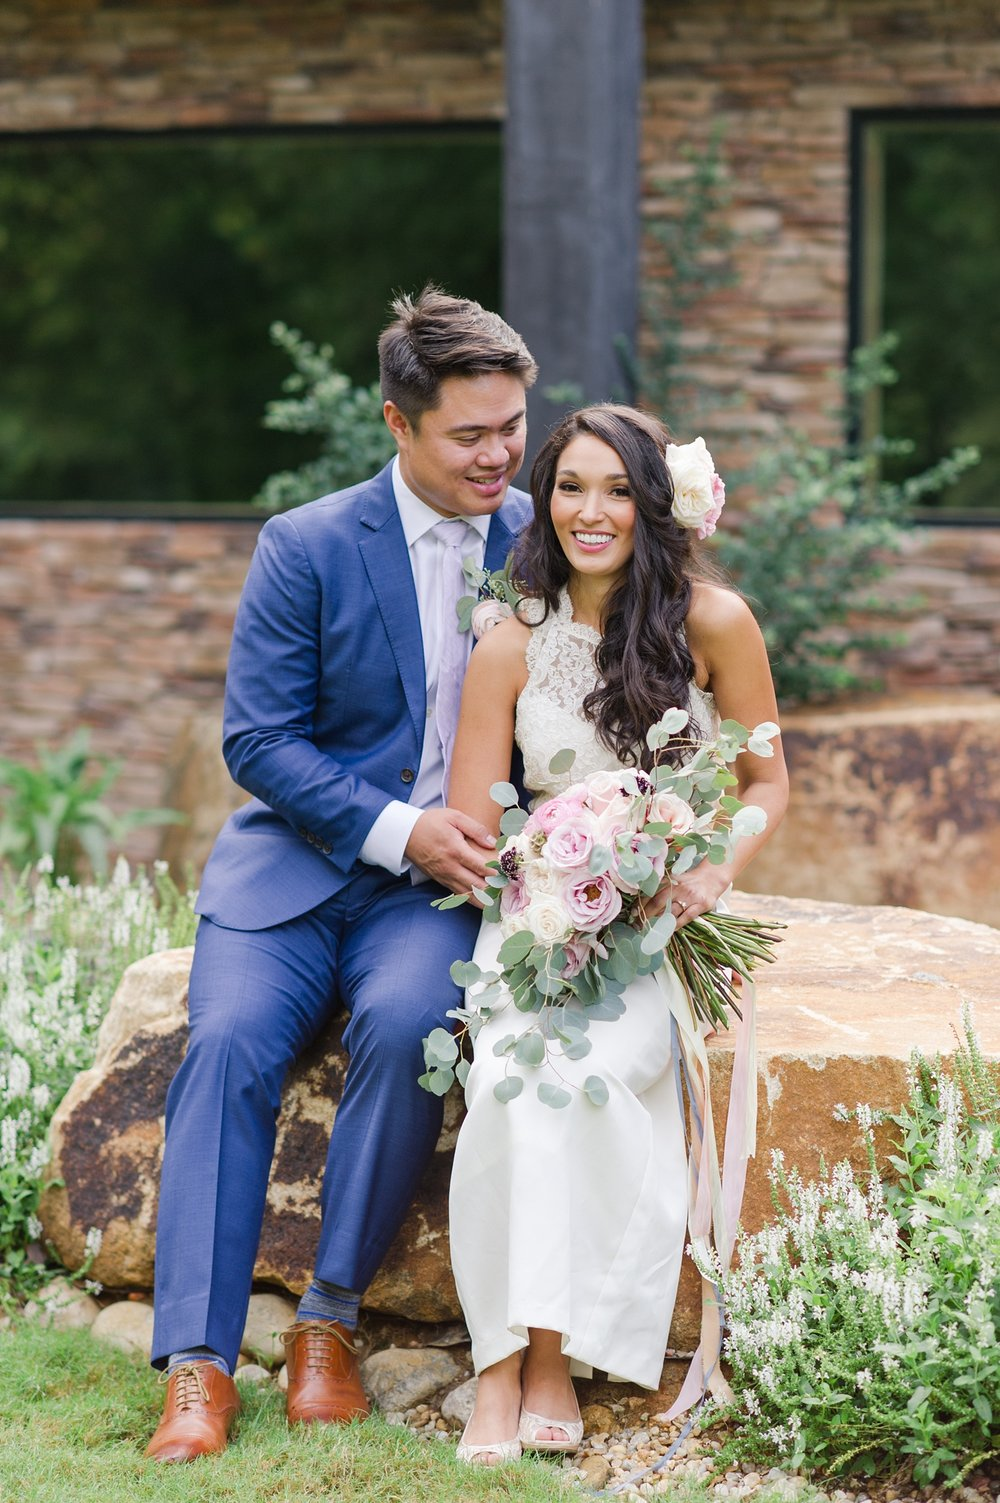 Styled Shoot photo of a bride and groom sitting with loose organic bouquet and a blue suit